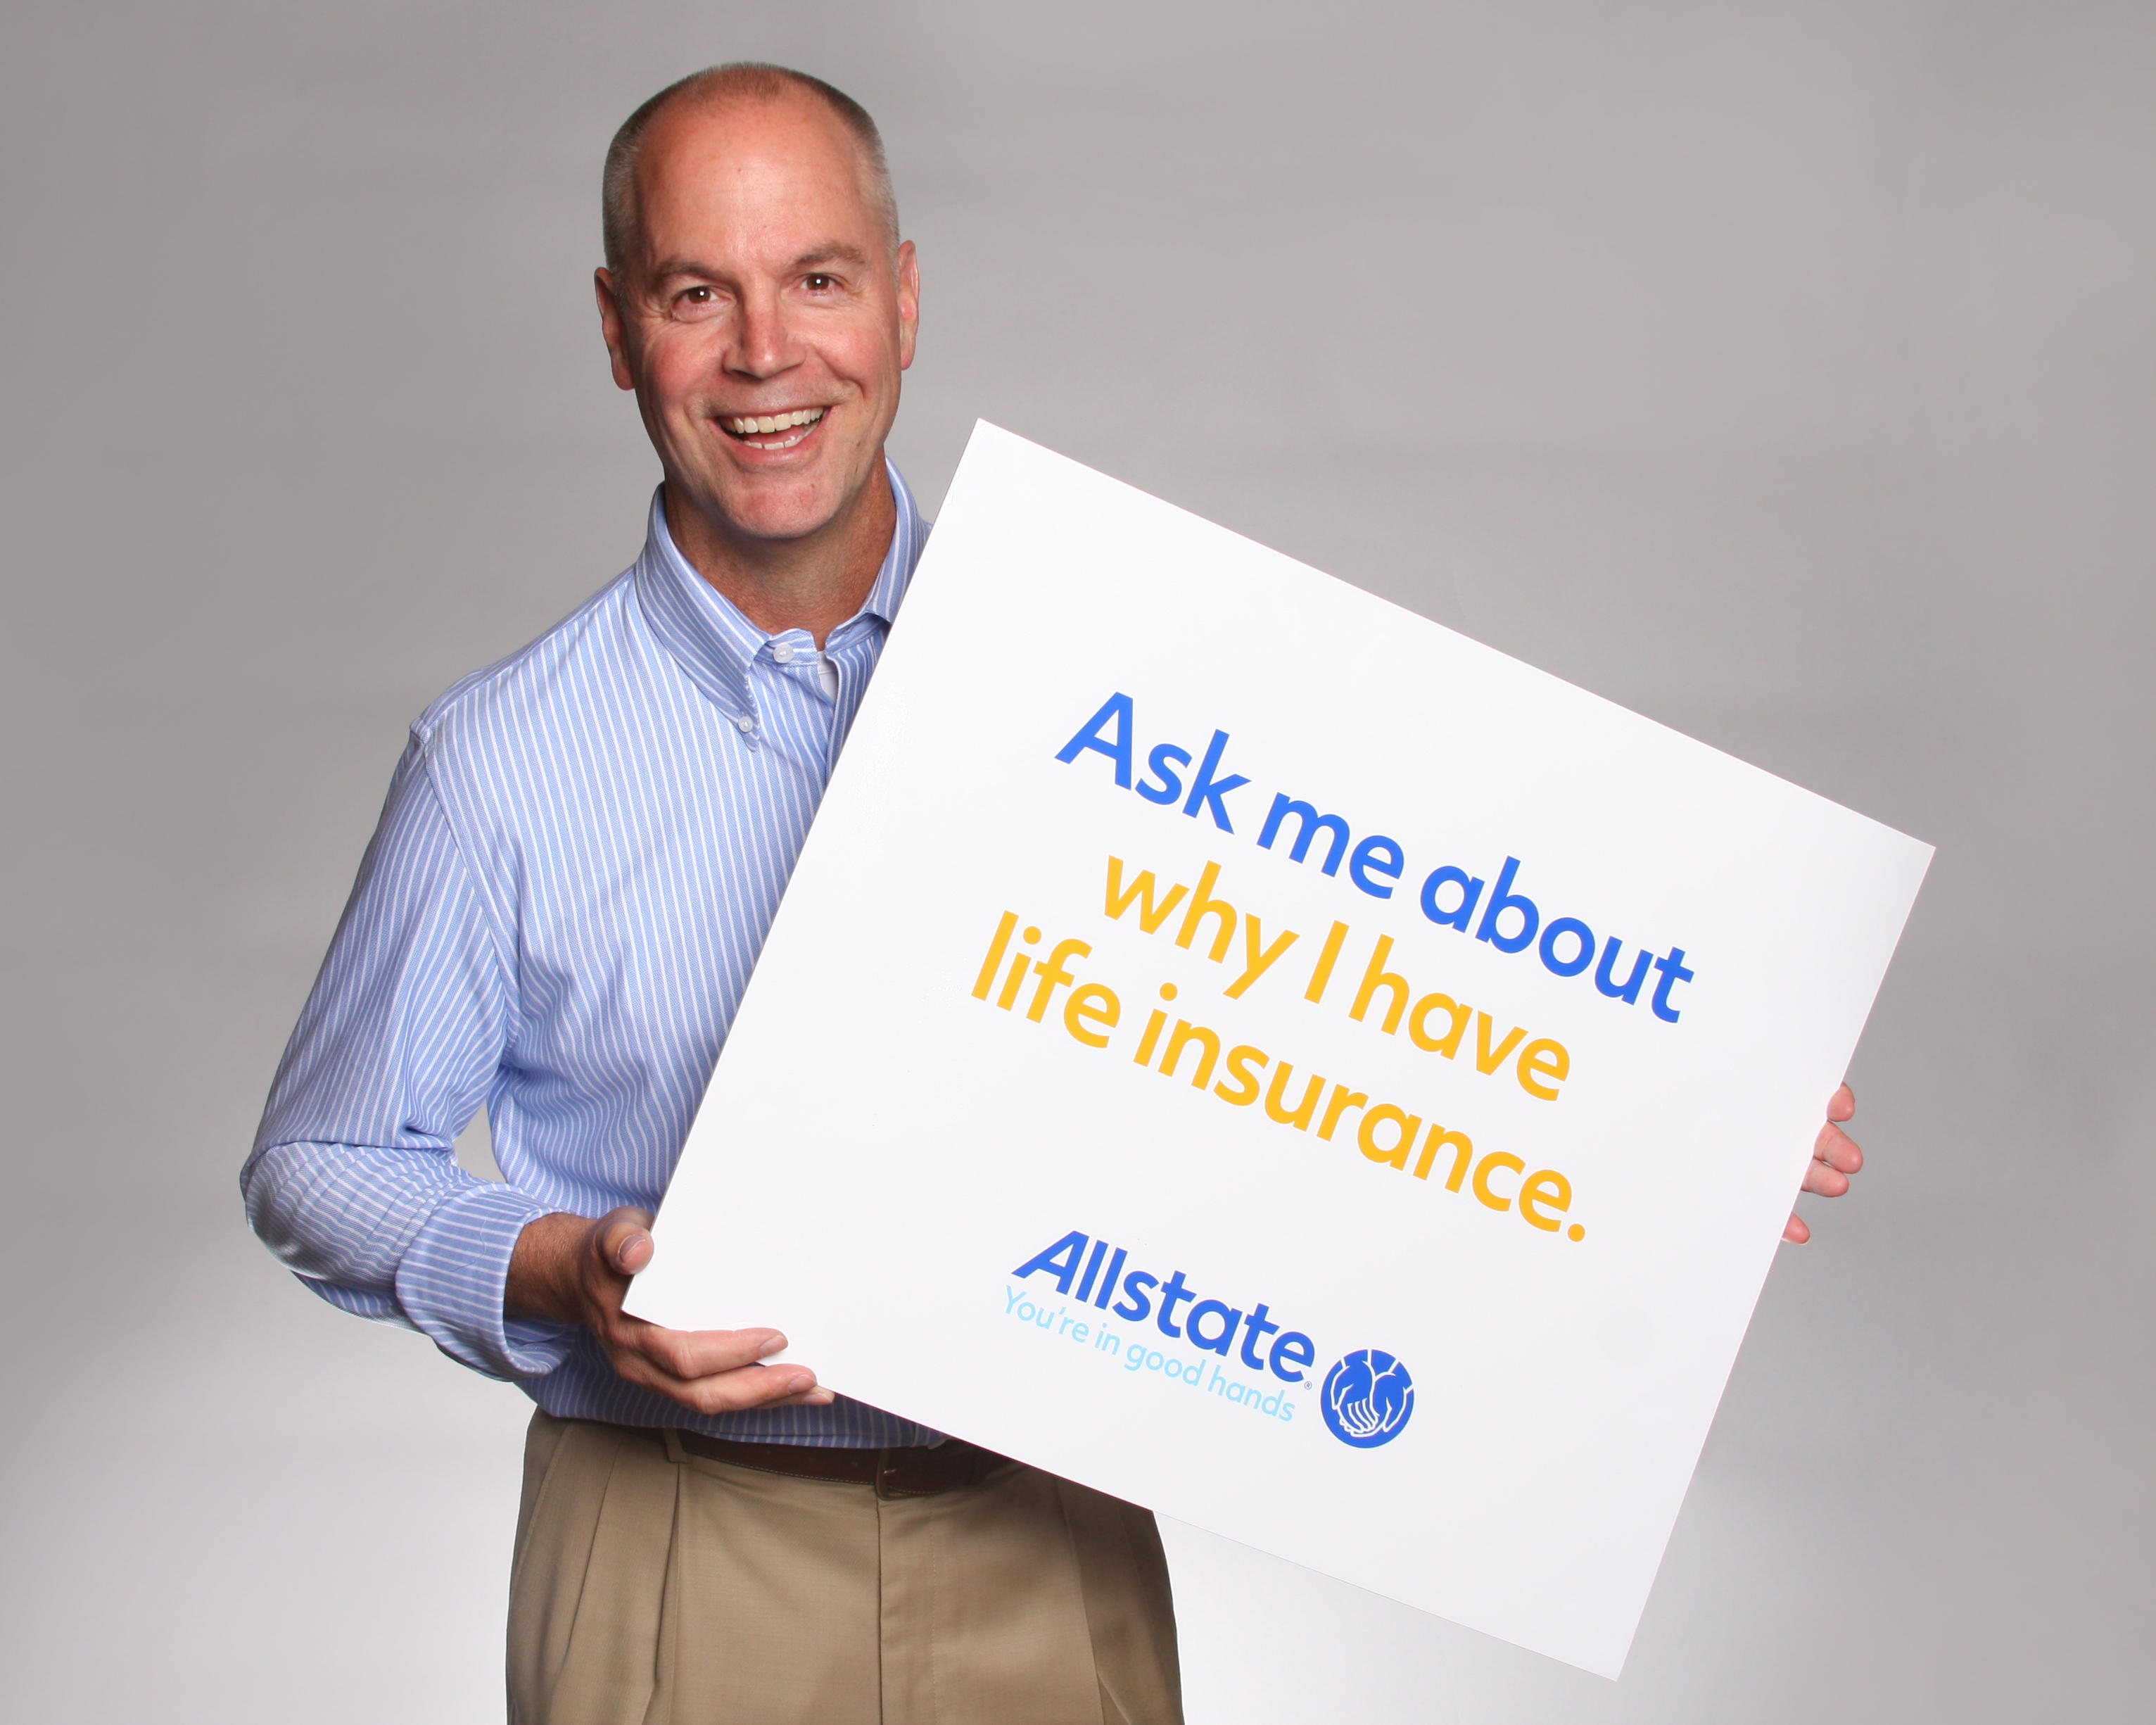 John Shepherd: Allstate Insurance image 1